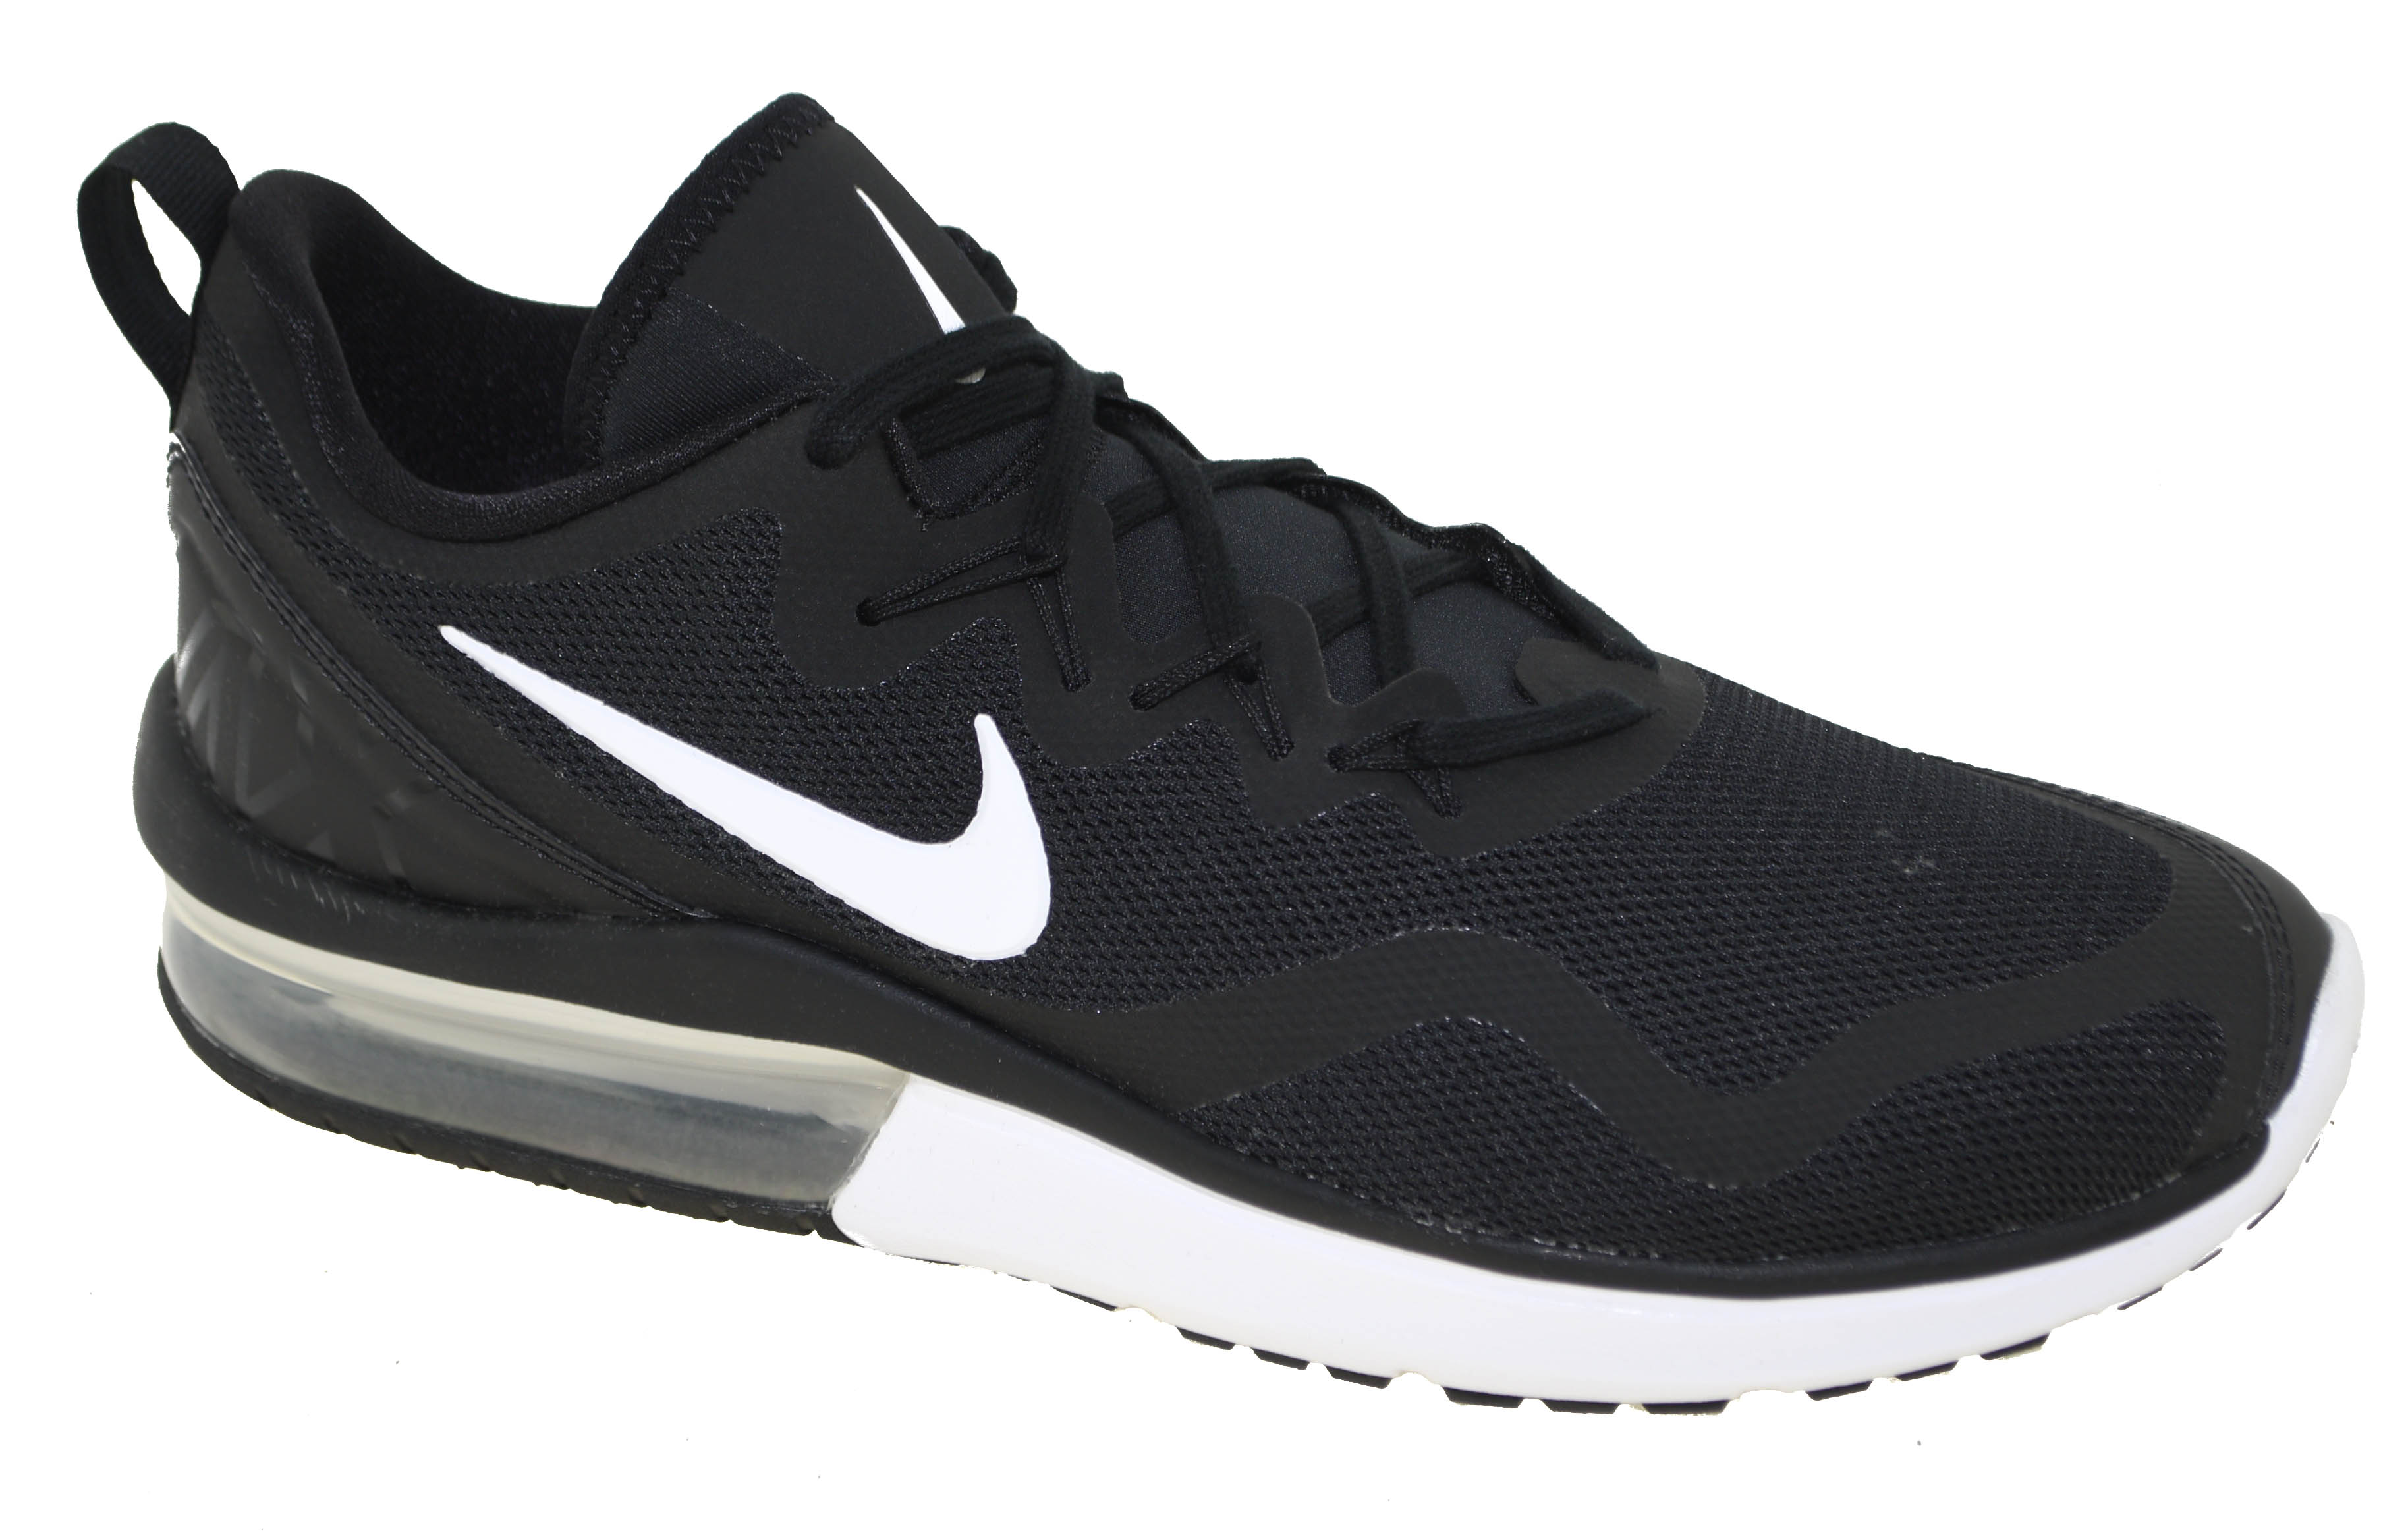 hot sale online 2c5b0 0c000 Click Thumbnails to Enlarge. The Nike Air Max Fury Womens ...